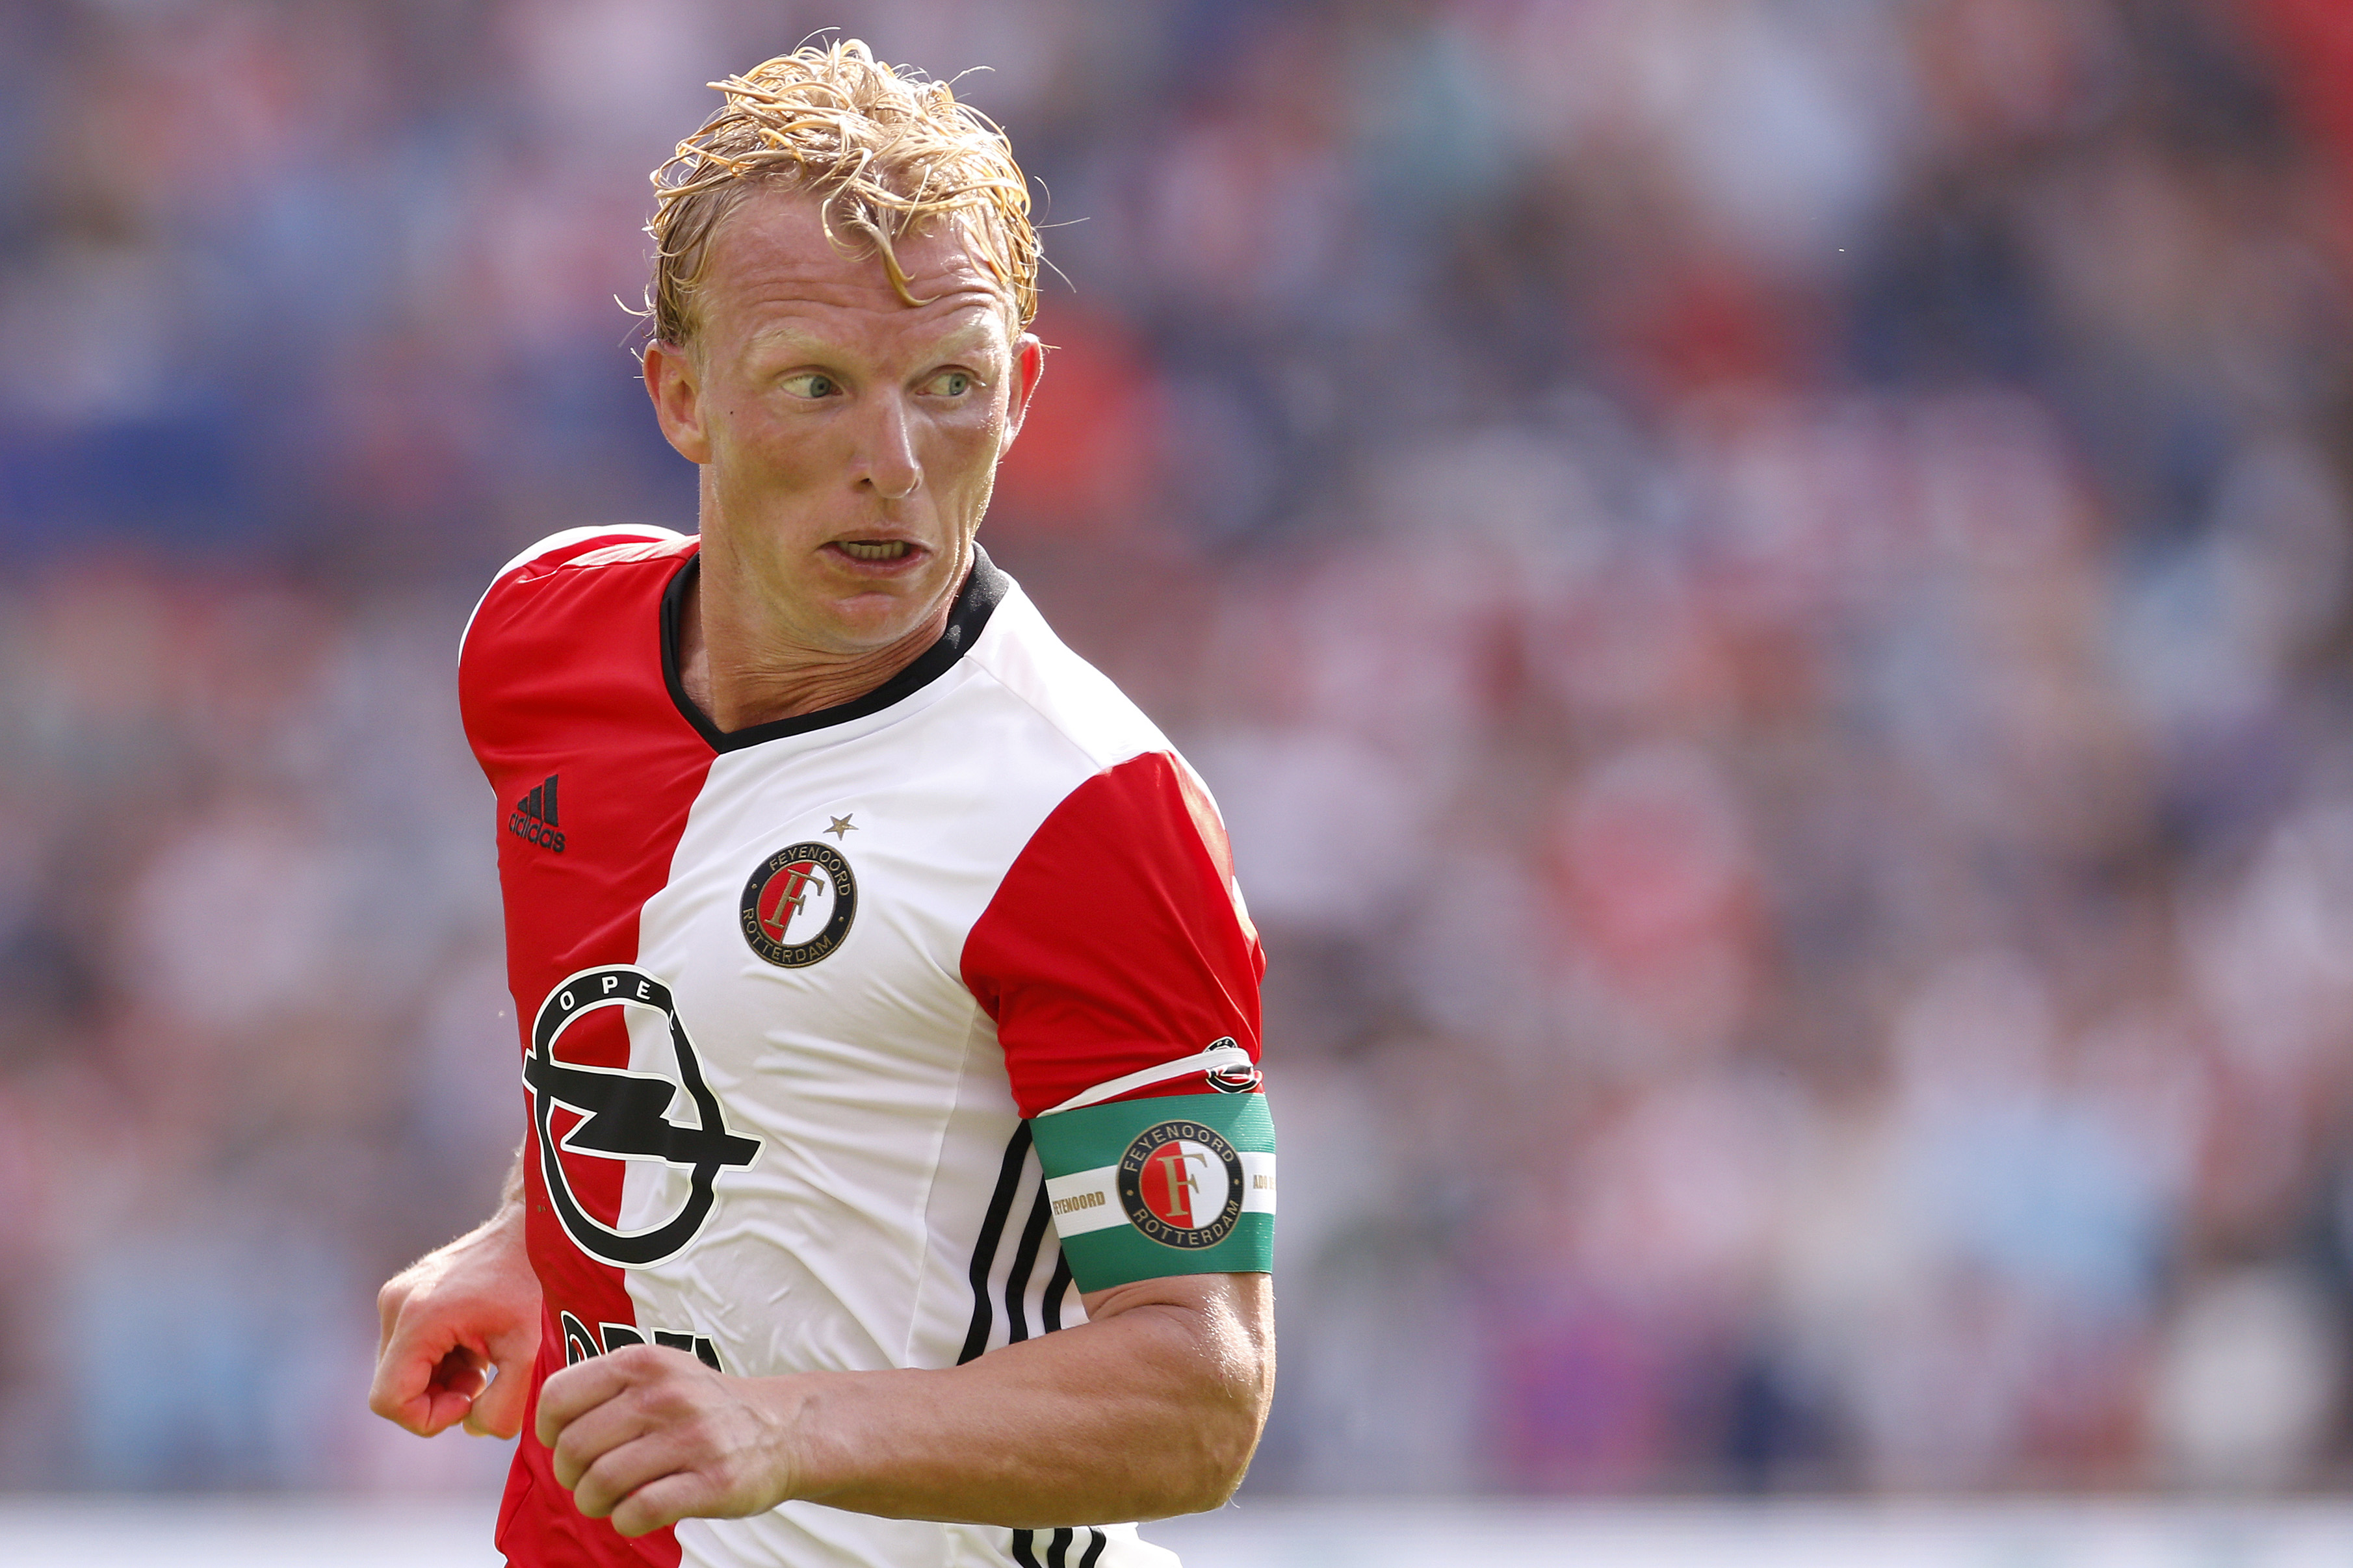 Ex-Liverpool star Dirk Kuyt hopes to score past Manchester United again for Feyenoord